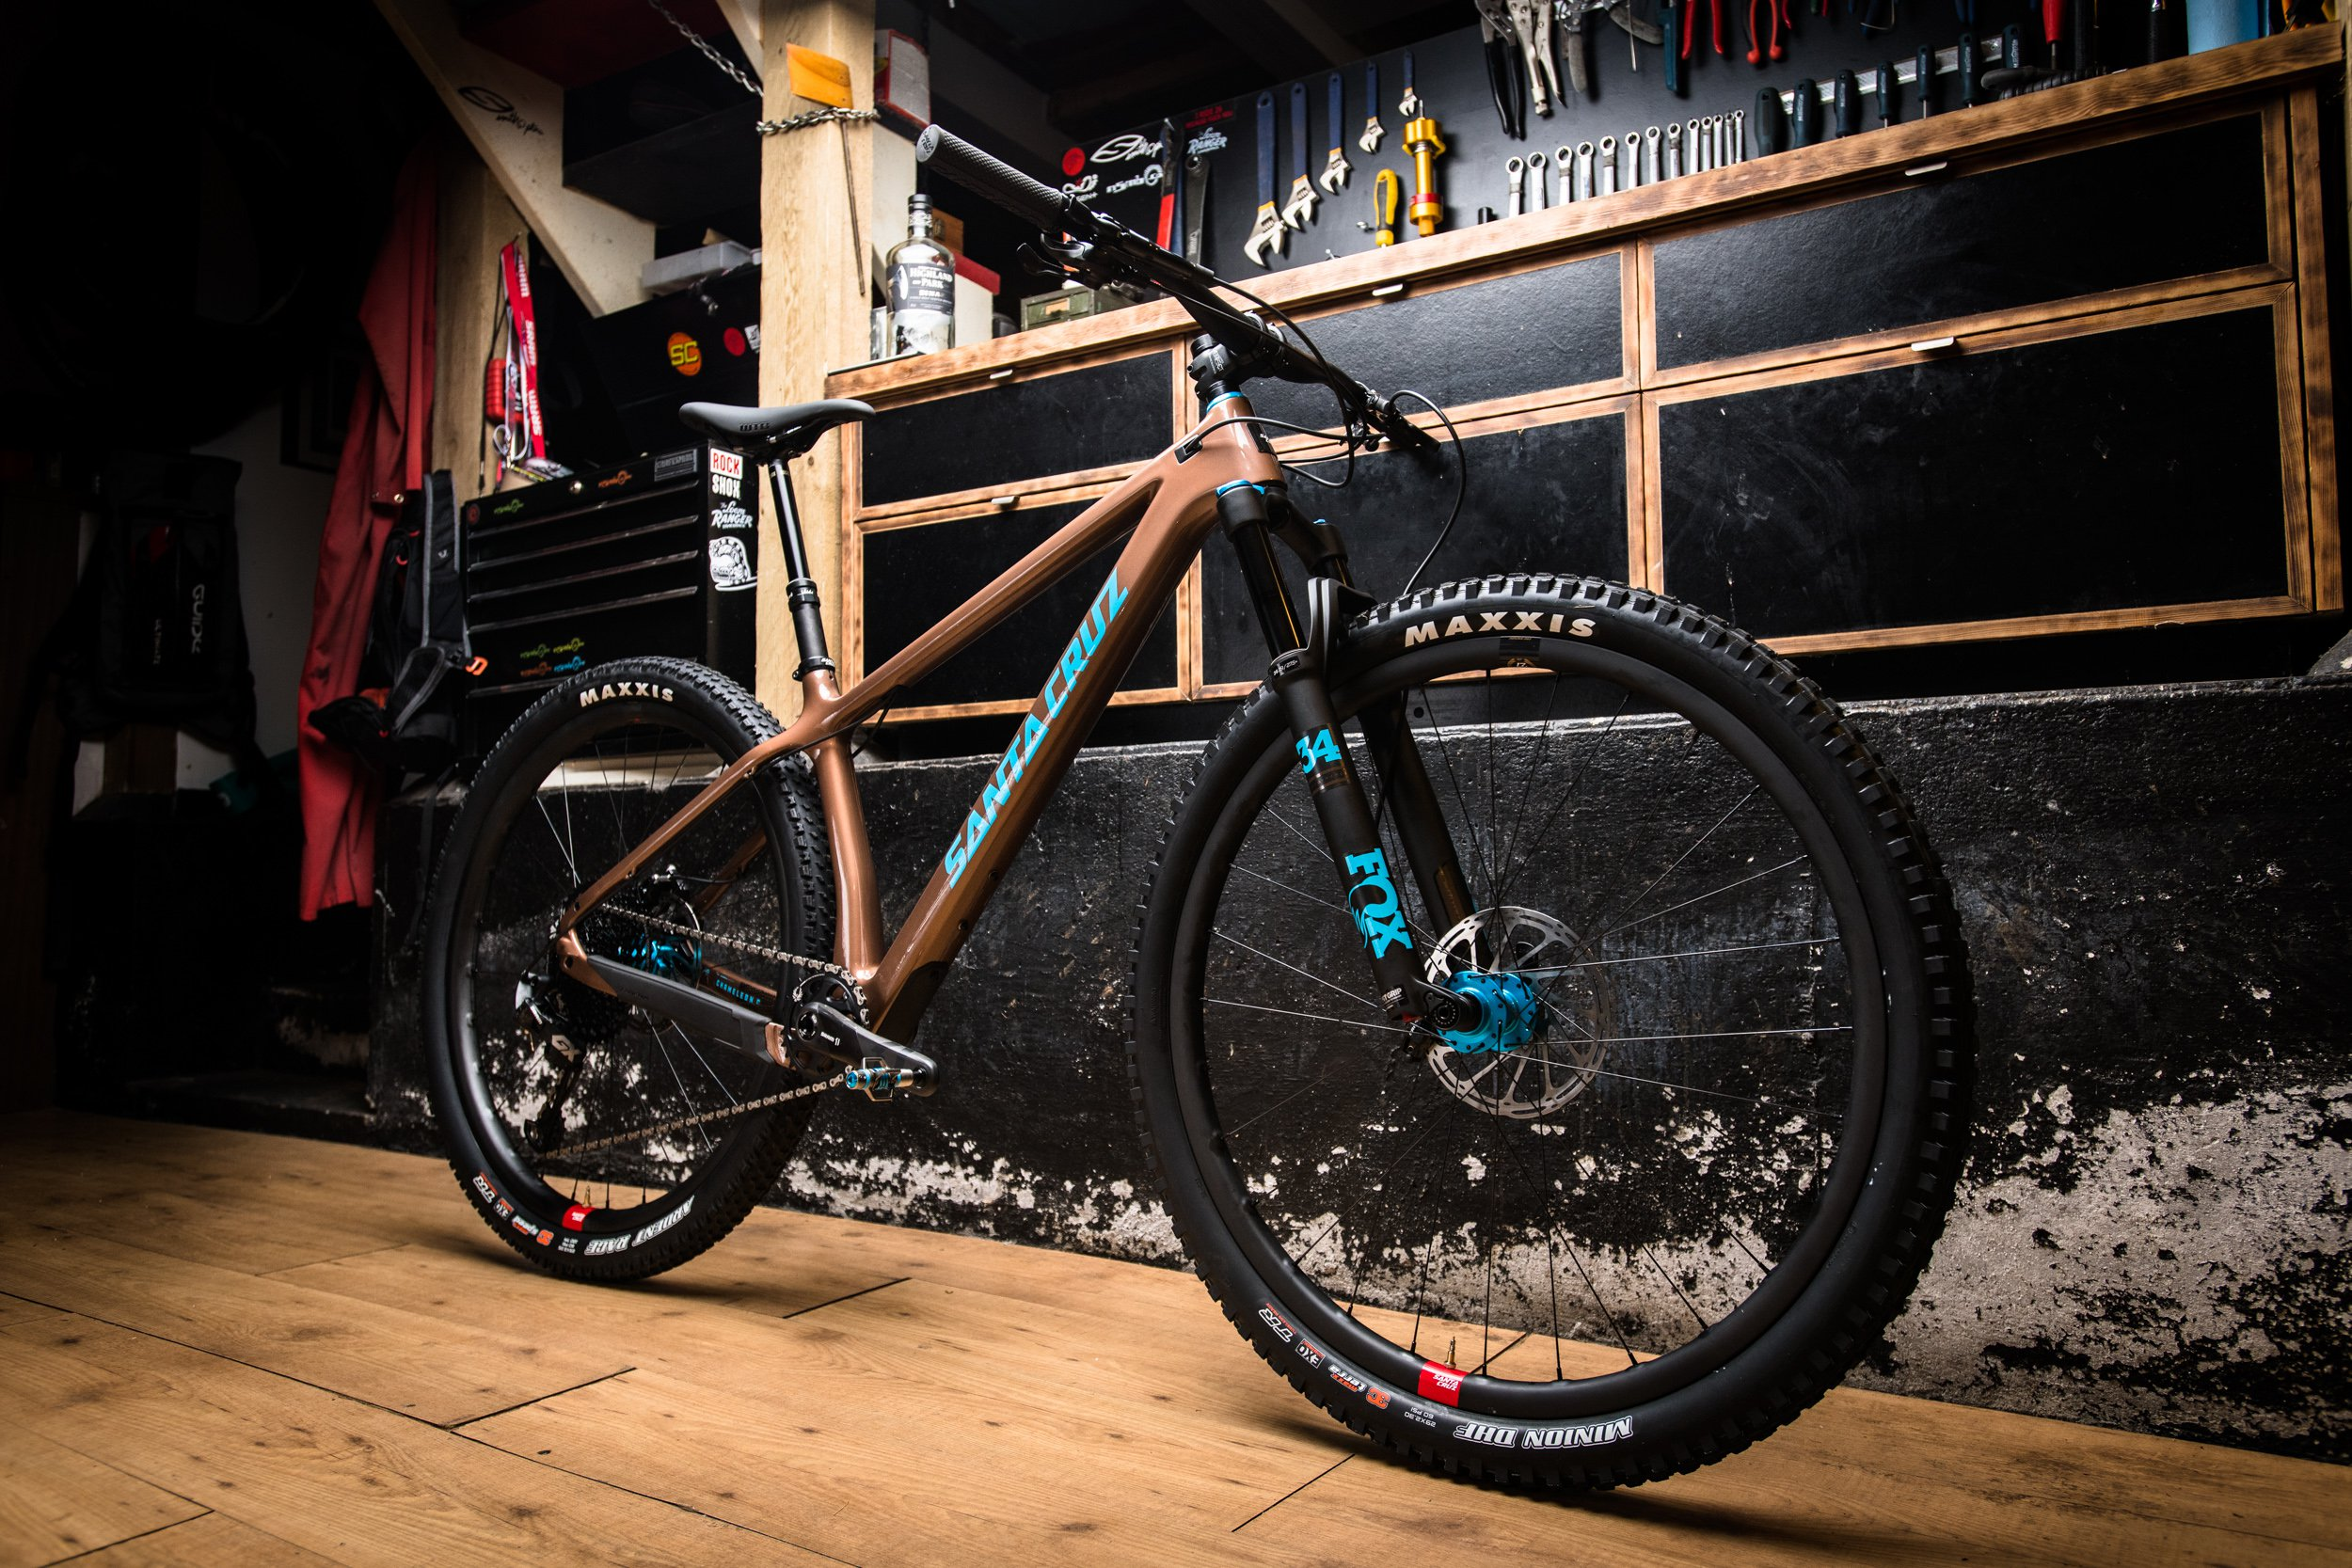 nsmb2019-gearreview-firstlook-santacruz-chameleon-7347.jpg